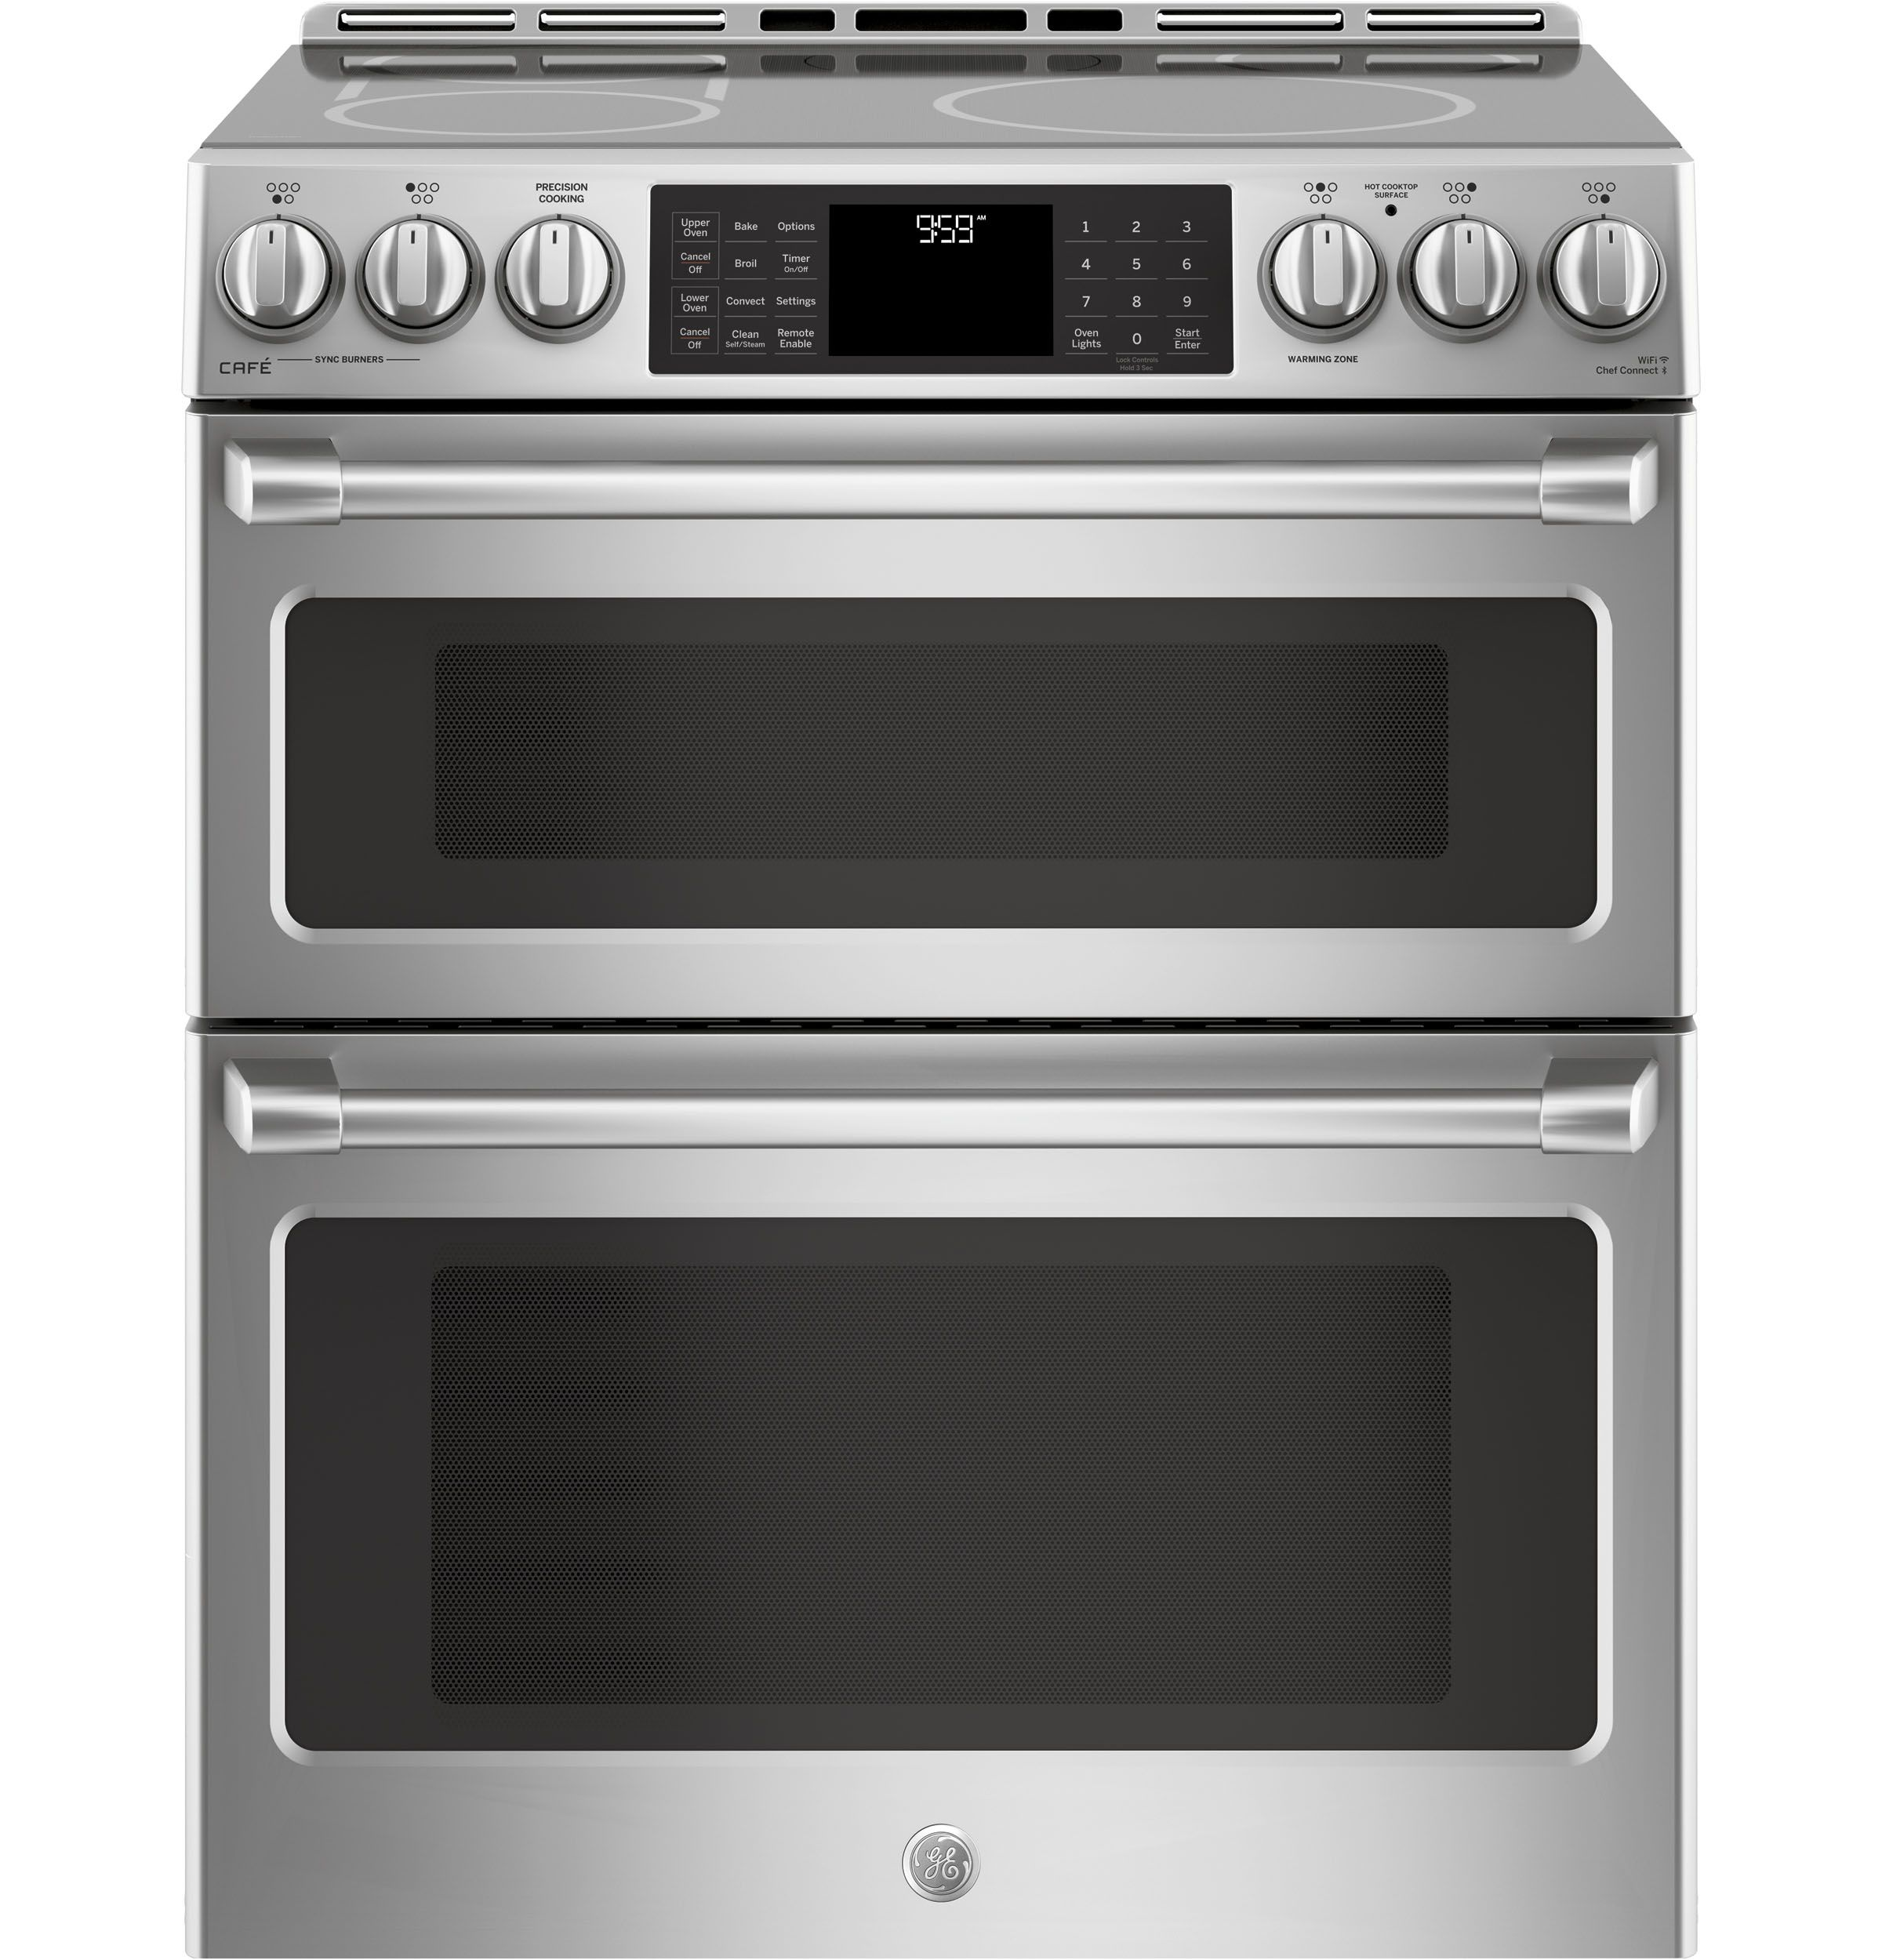 Ge Cafe Series 30 Quot Slide In Front Control Induction And Convection Double Oven Range Chs995sels Gas Range Double Oven Gas Double Oven Double Oven Range